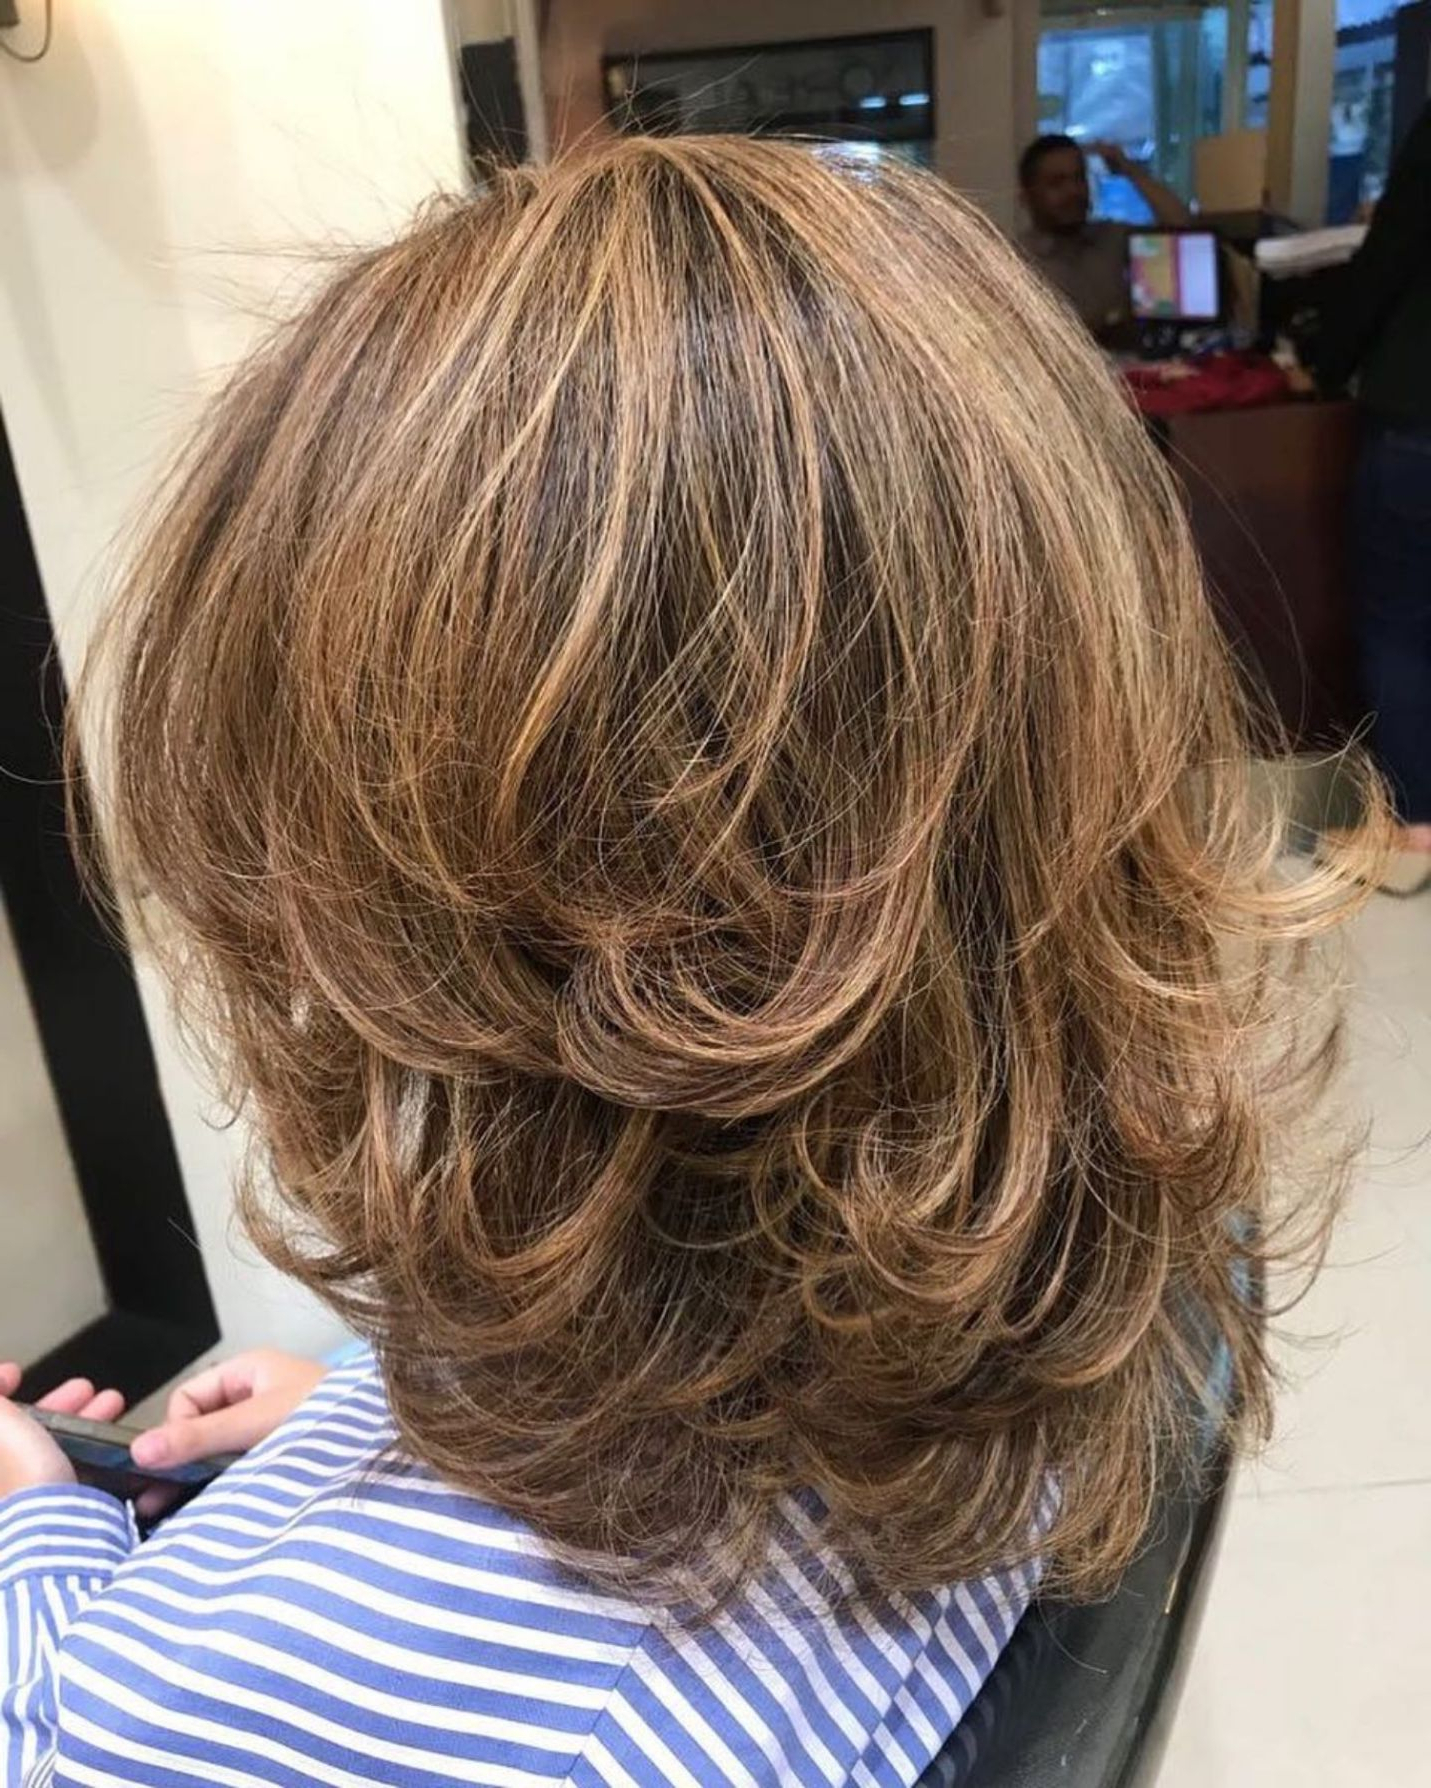 Hair Pertaining To Latest Medium Haircuts With Fiery Ombre Layers (View 10 of 20)